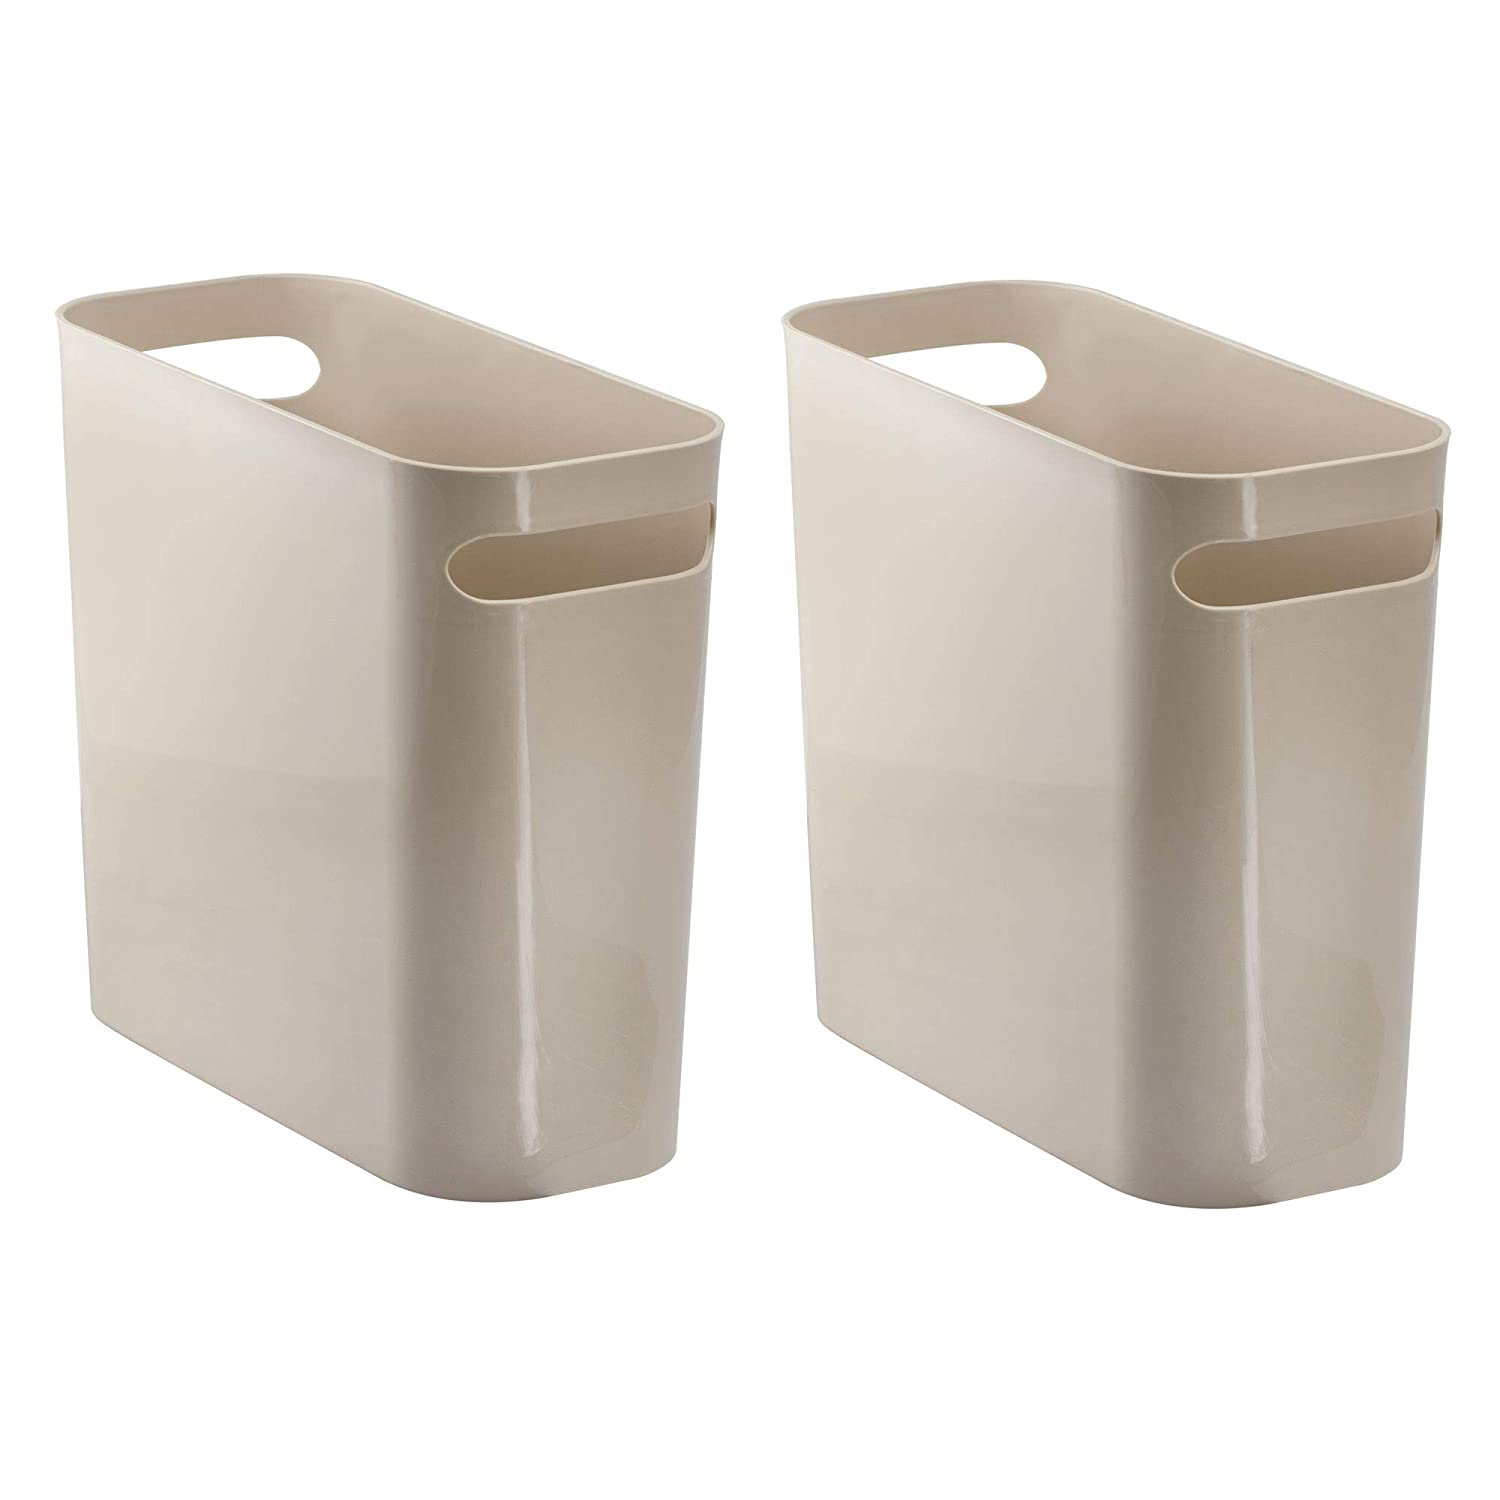 "mDesign Slim Plastic Rectangular Small Trash Can Wastebasket, Garbage Container Bin with Handles for Bathroom, Kitchen, Home Office, Dorm, Kids Room - 10"" high, Shatter-Resistant, 2 Pack - Dark Brown Kids Room - 10"" high MetroDecor"